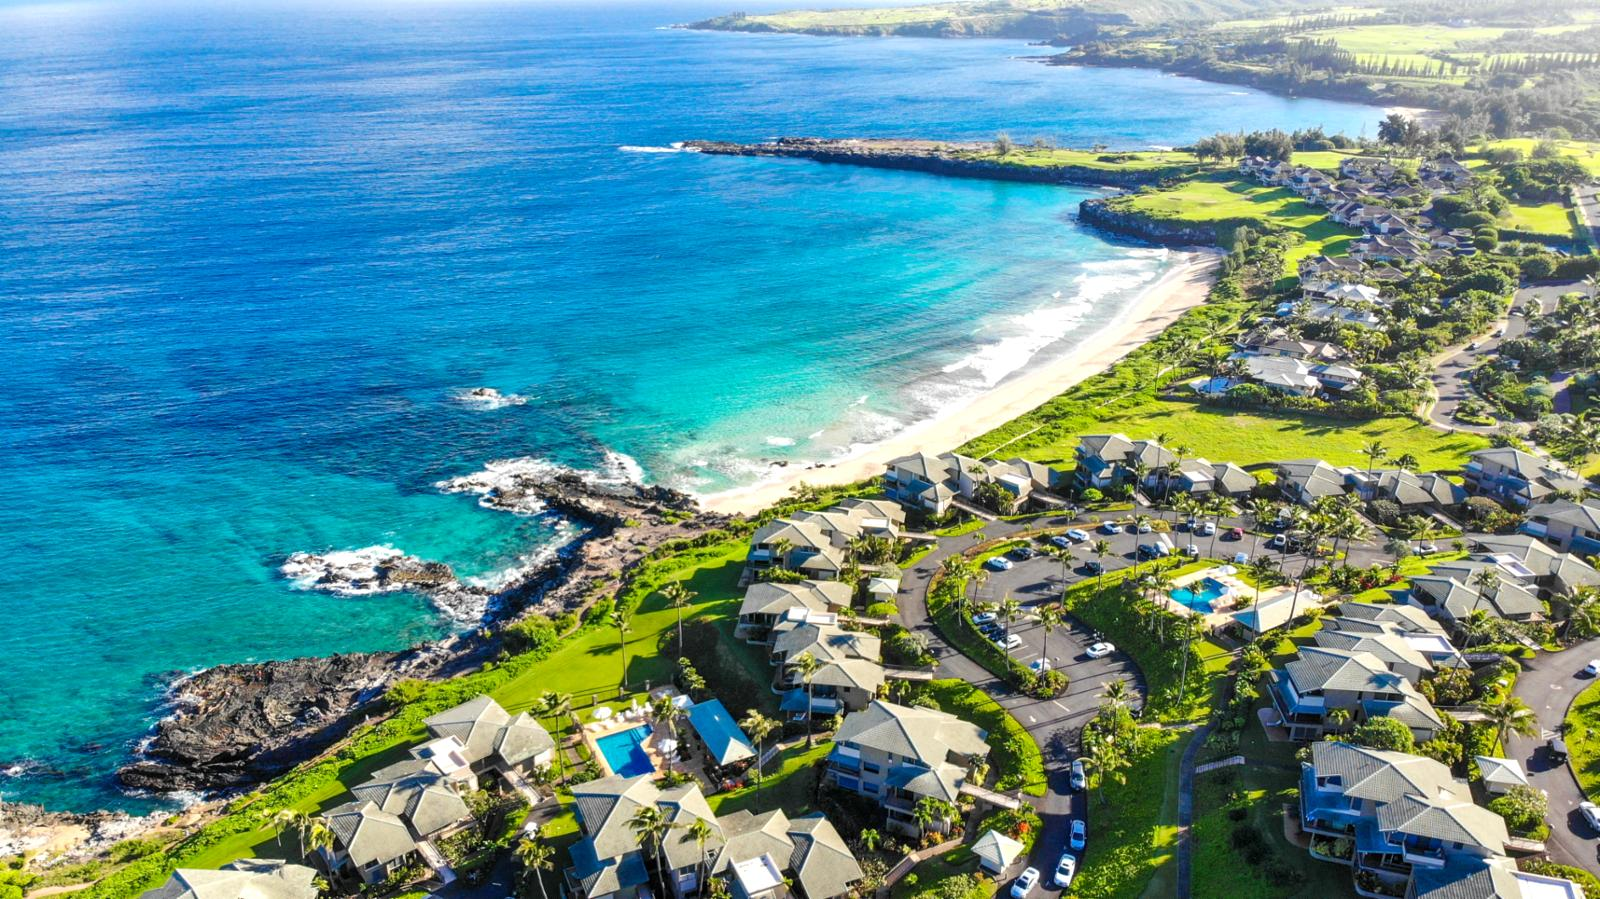 The world famous Kapalua Bay Villas! Birds eye view!